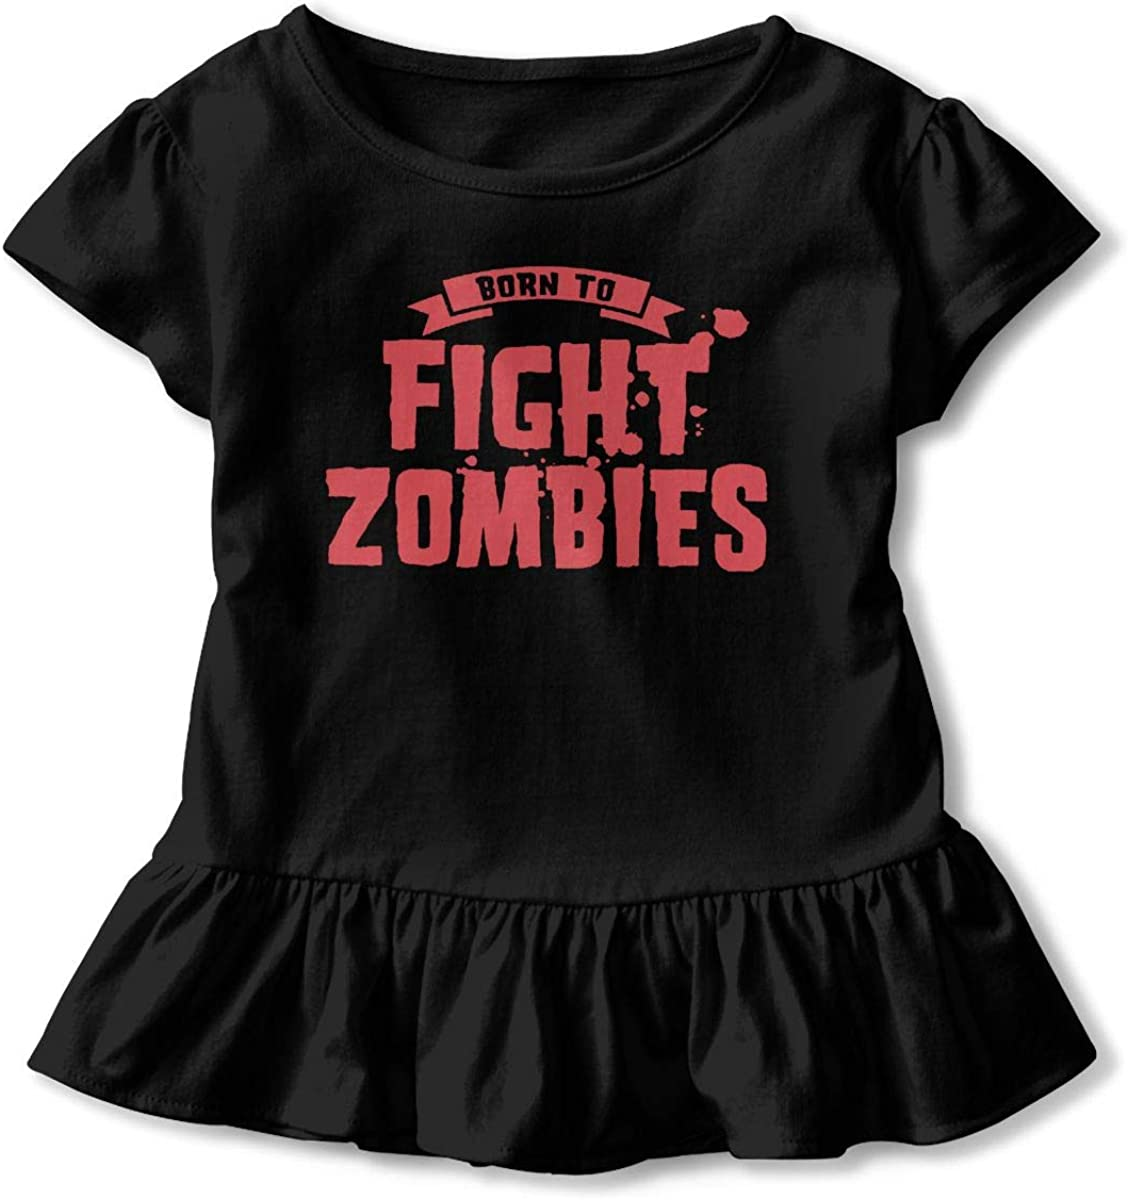 Born to Fight Zombies Baby Skirts Stylish Kids T Shirt Dress Comfortable Flounces Costume